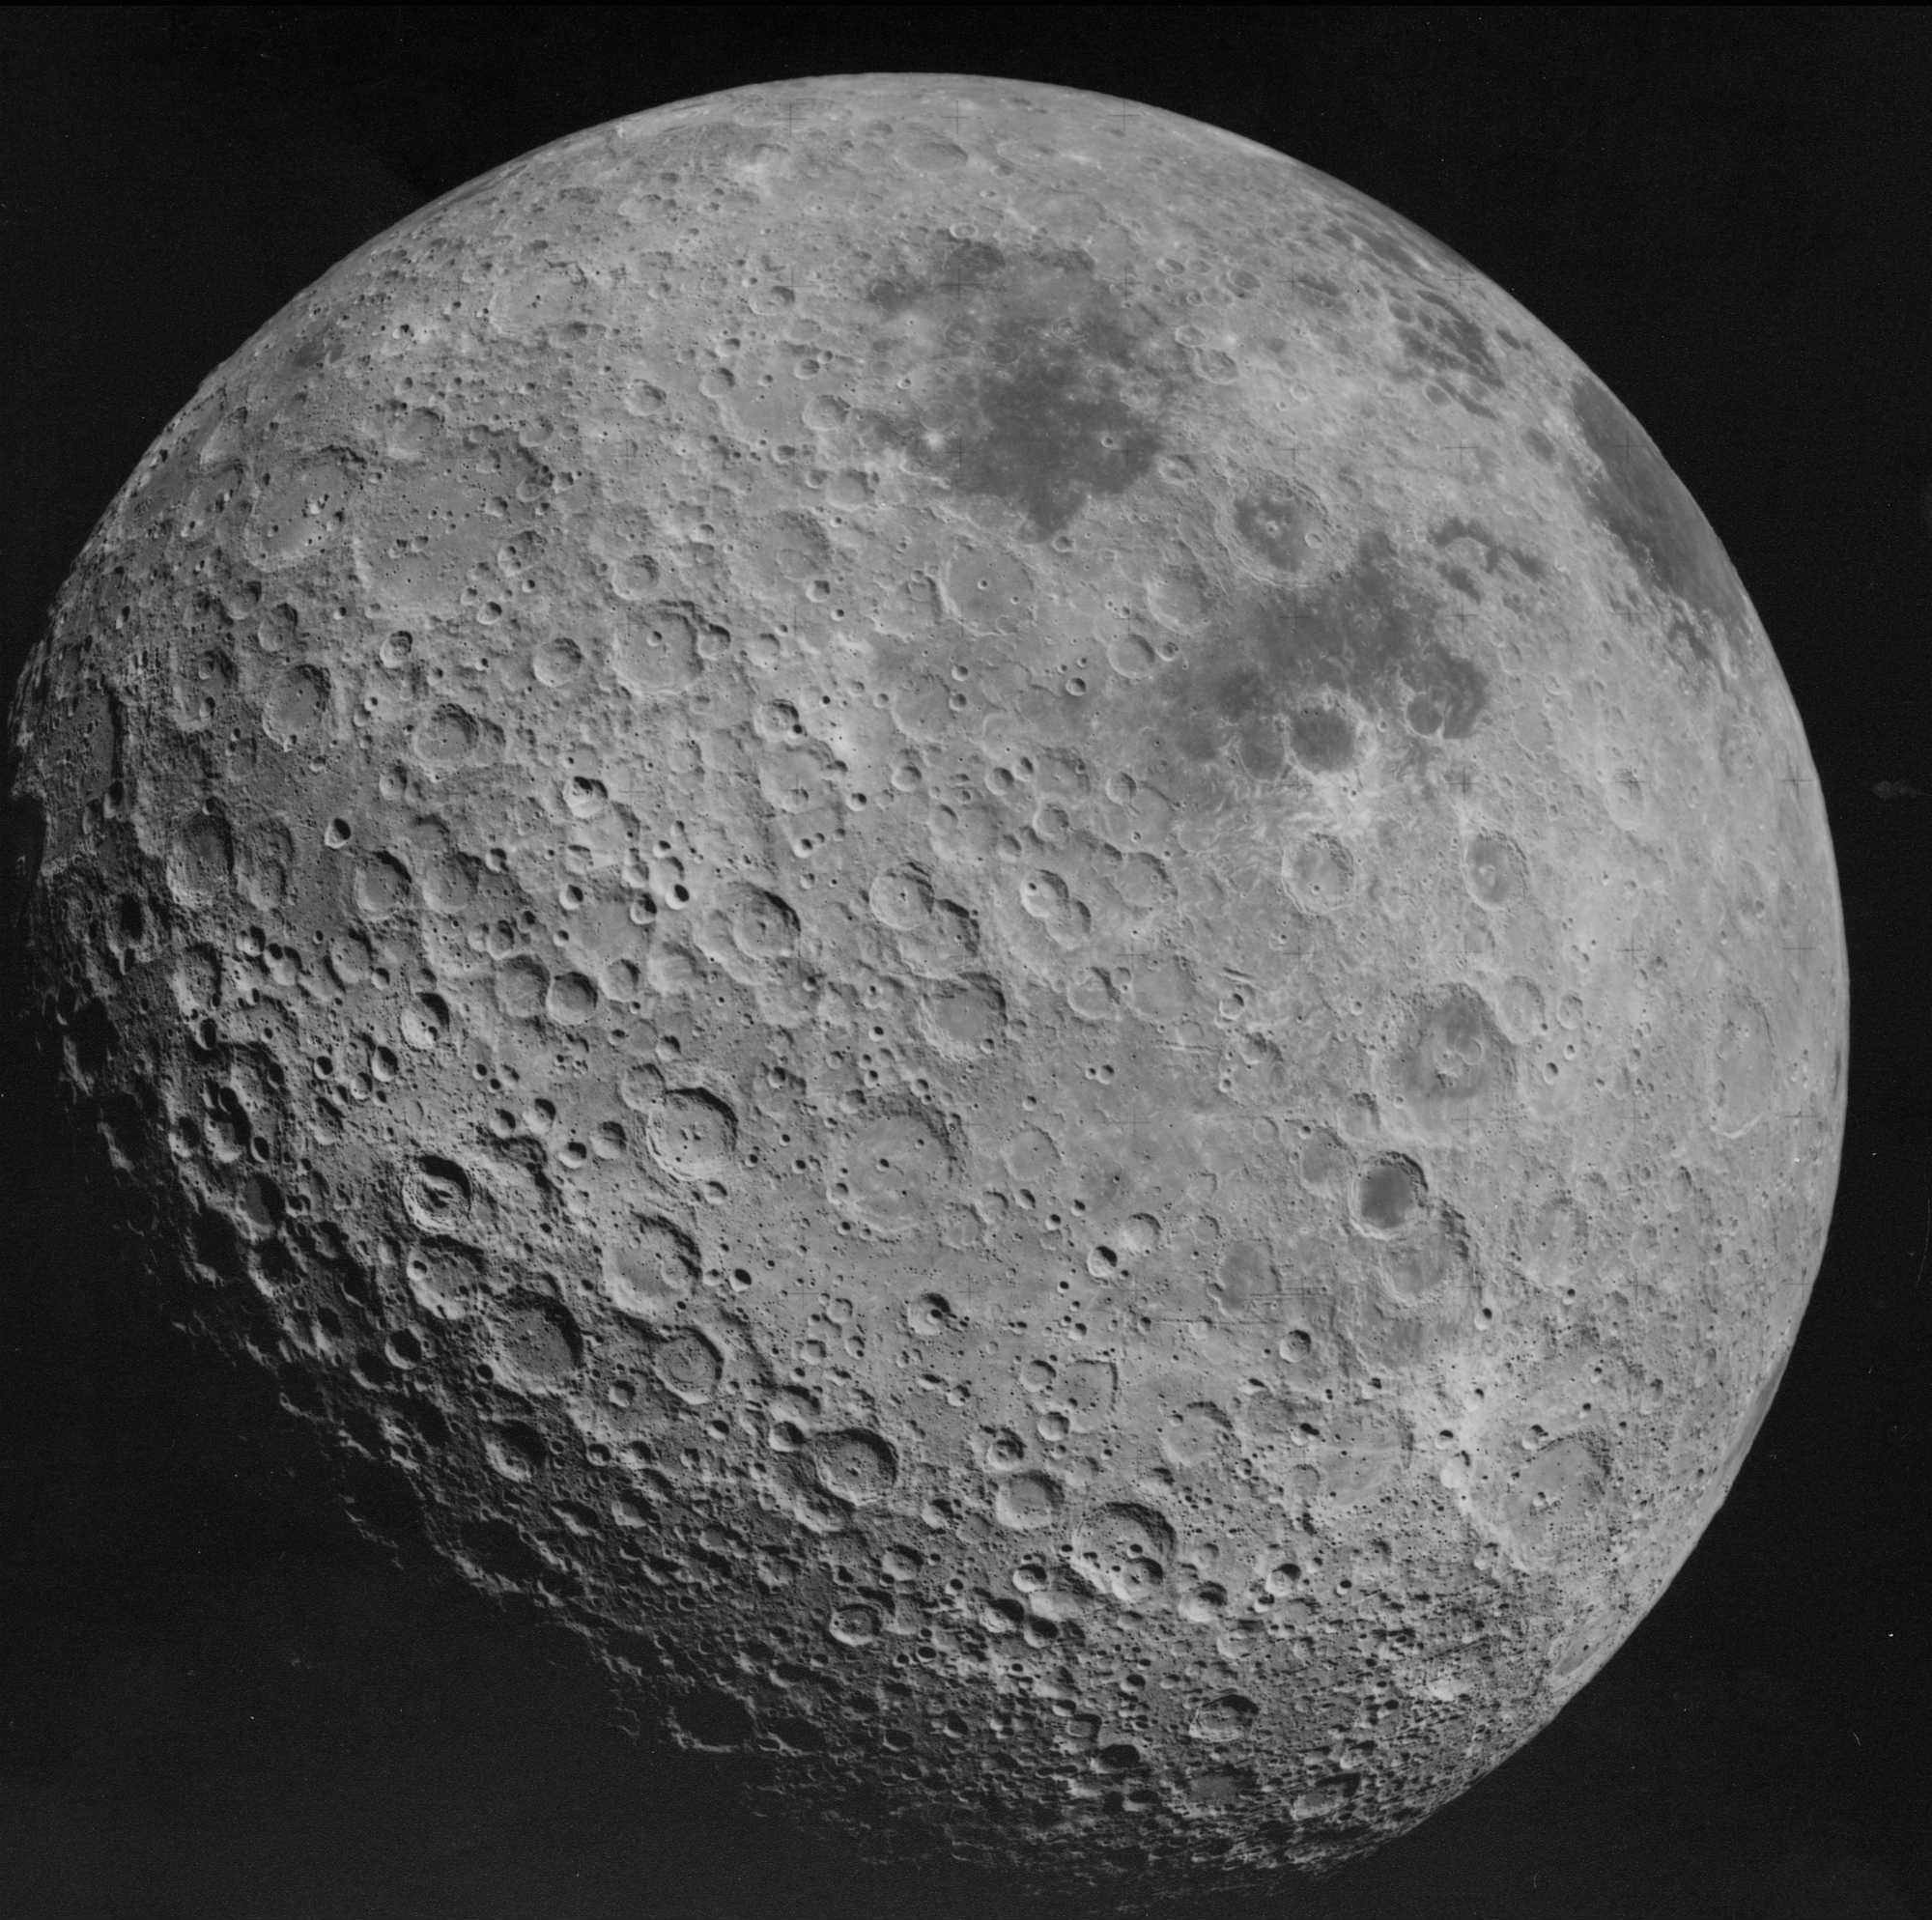 Back side of the Moon AS16 3021 image